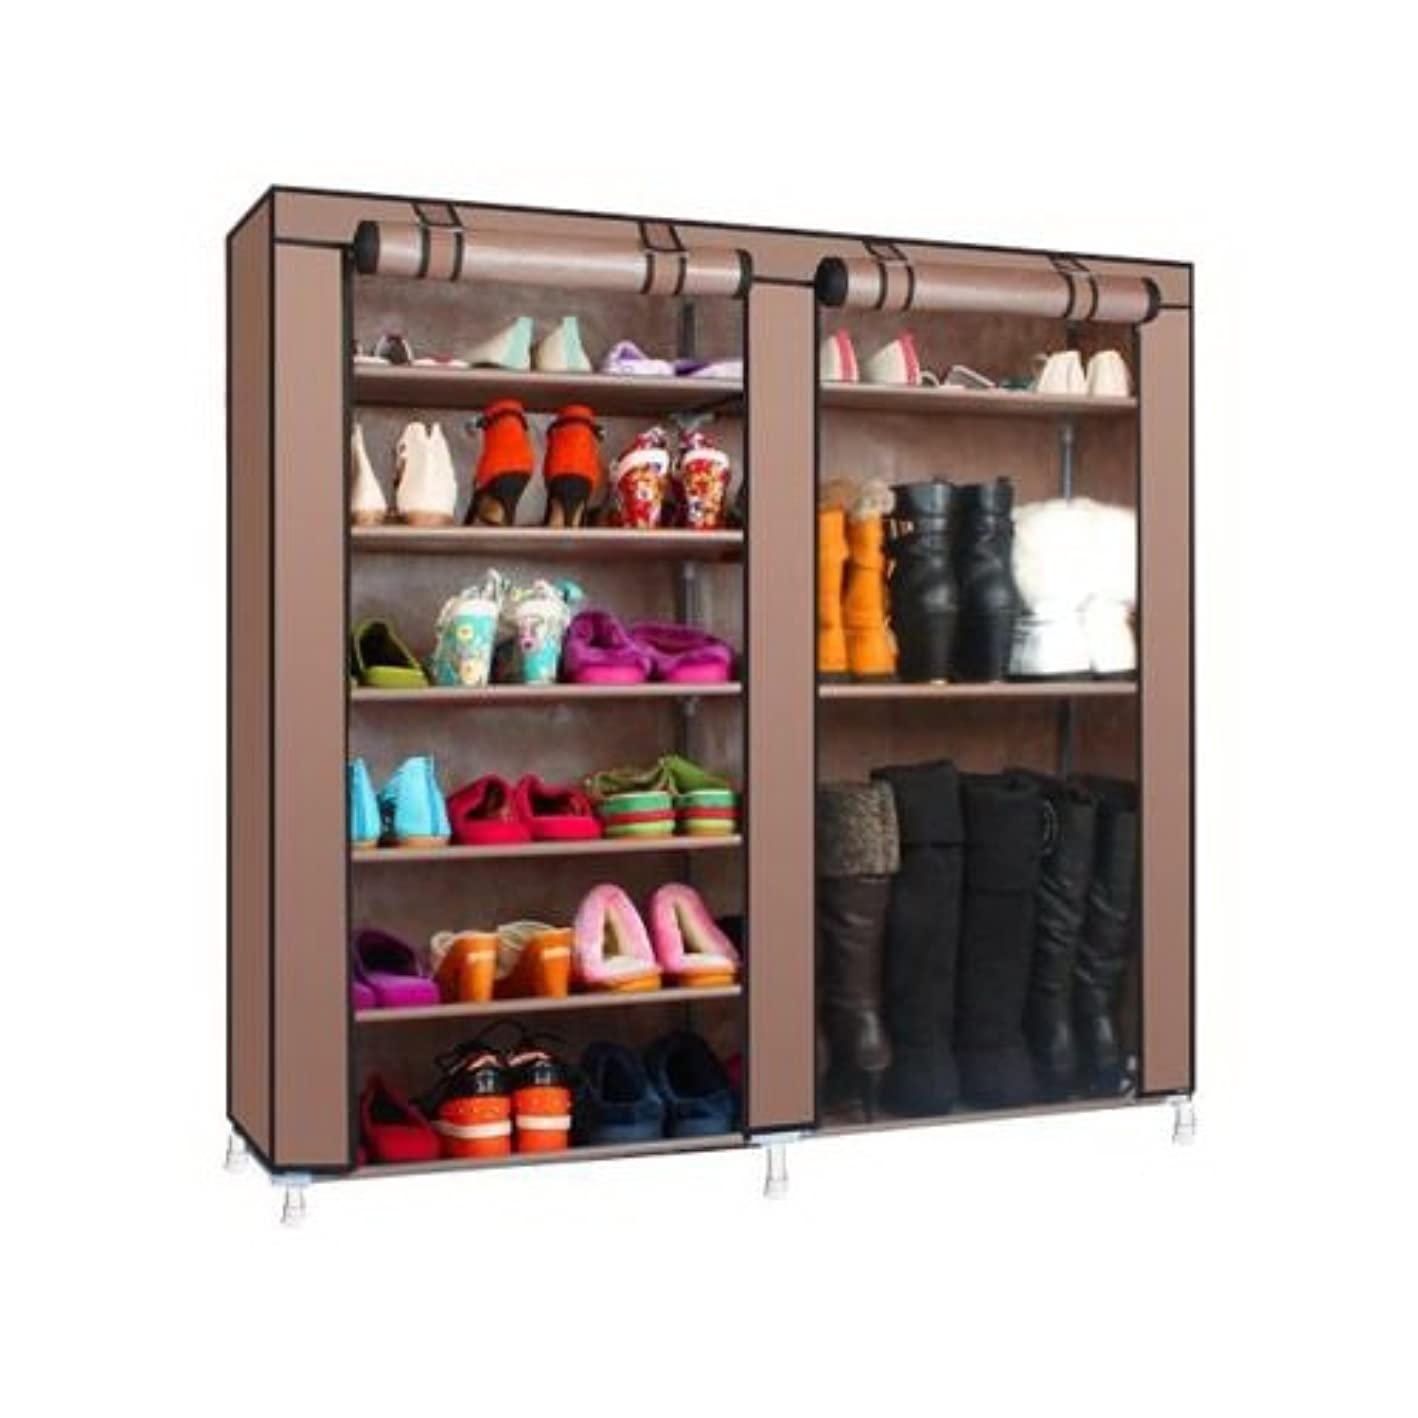 dtemple Double Row Shoe Rack with Nonwoven Fabric Cover 6 Layer 12 Grid Closet Shoe Storage Organizer, US Stock (Coffee 2)